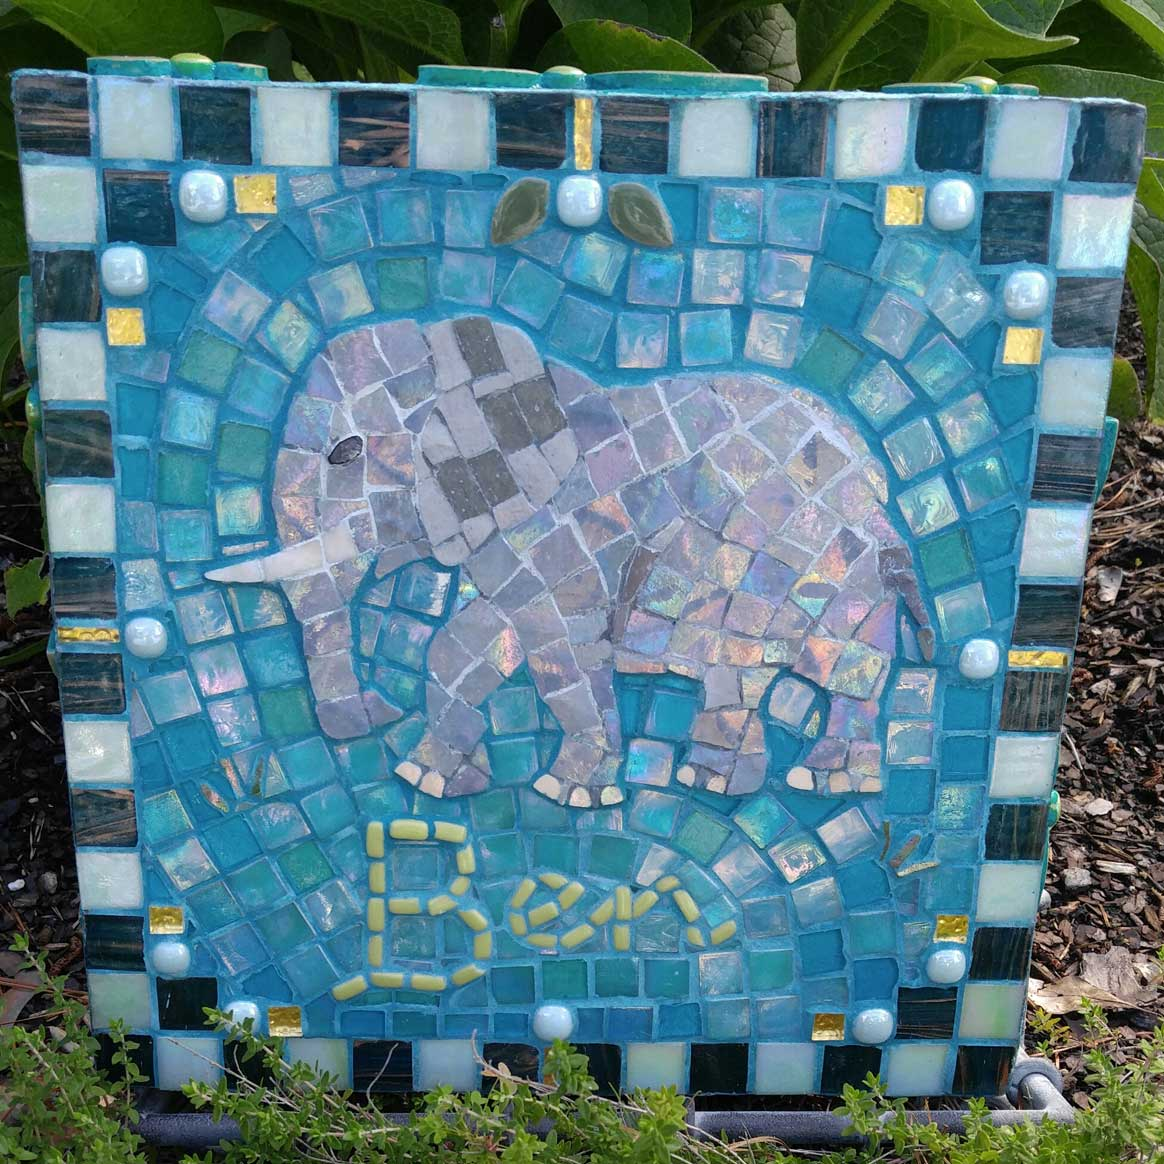 Mosaic Memorial Garden Art Stone of Ben's Elephant by Water's End Studio Artist Linda Solby